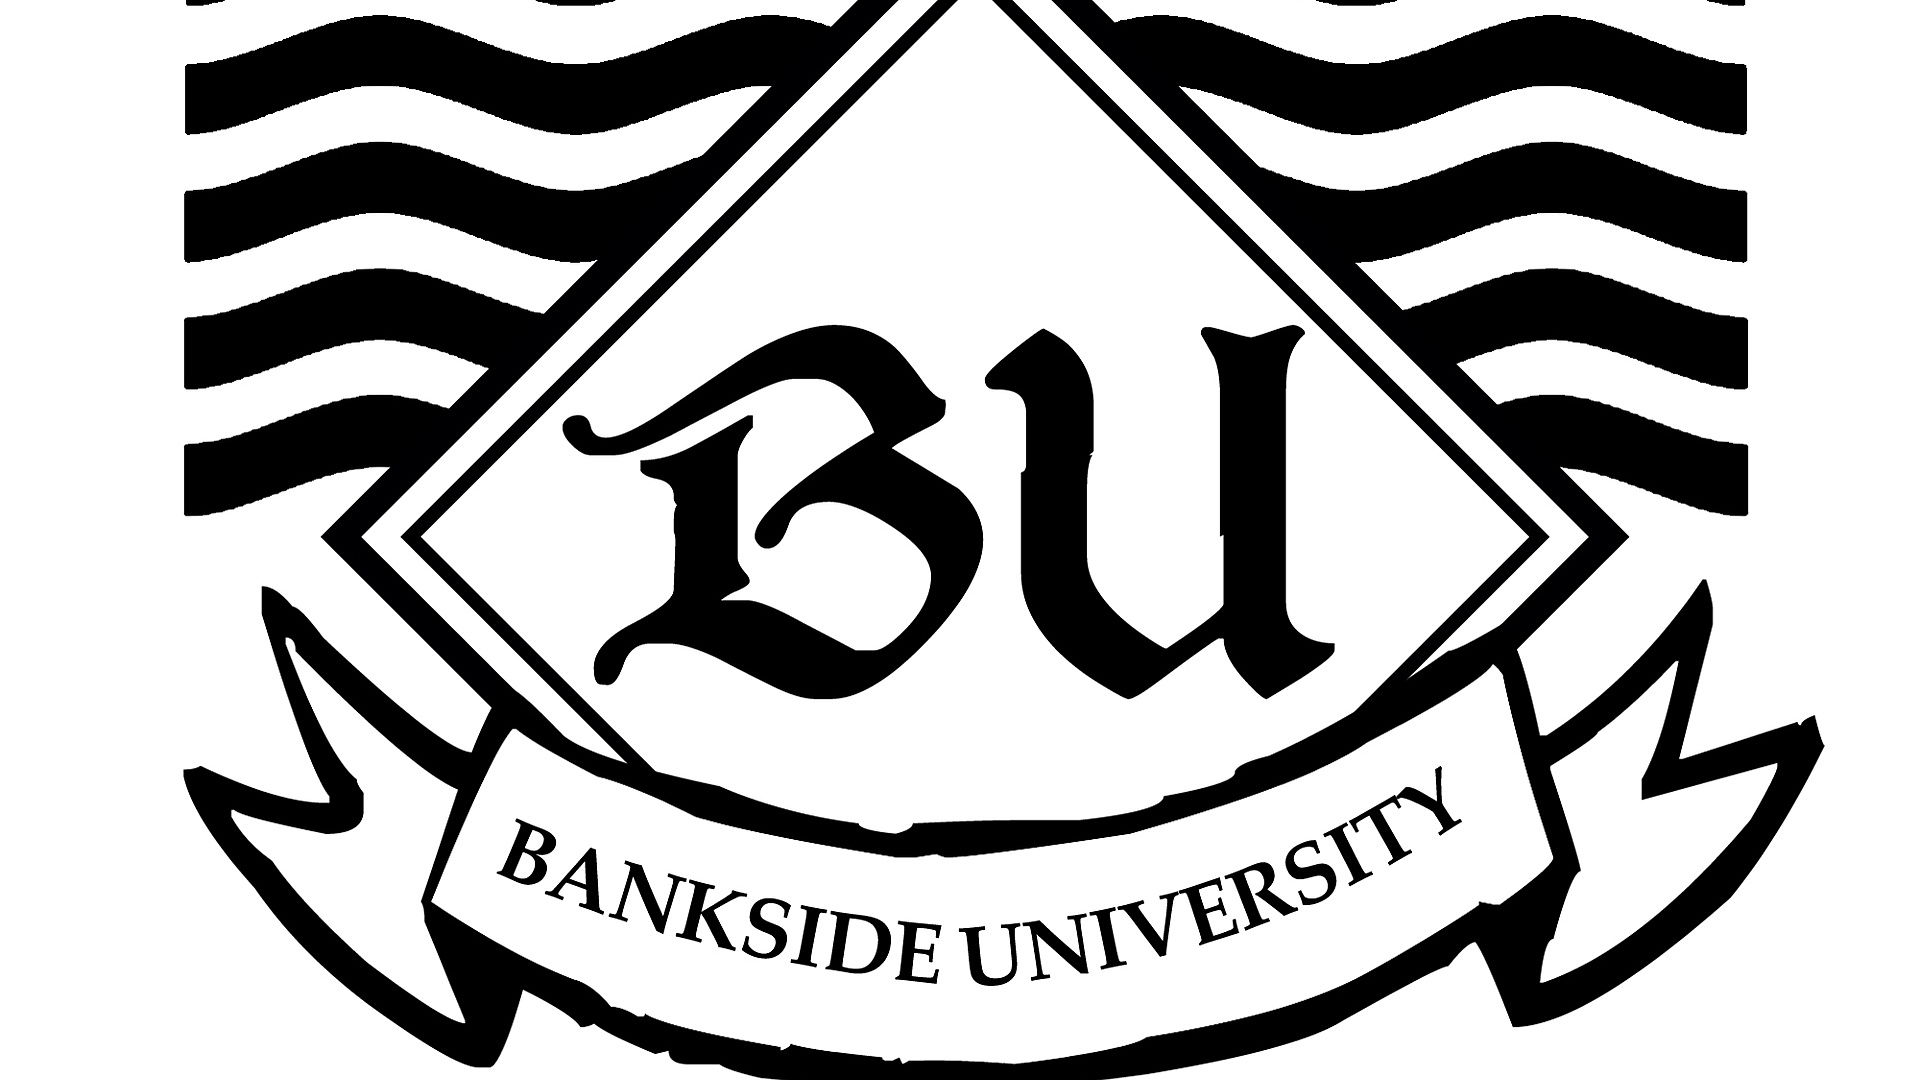 Bankside University Logo